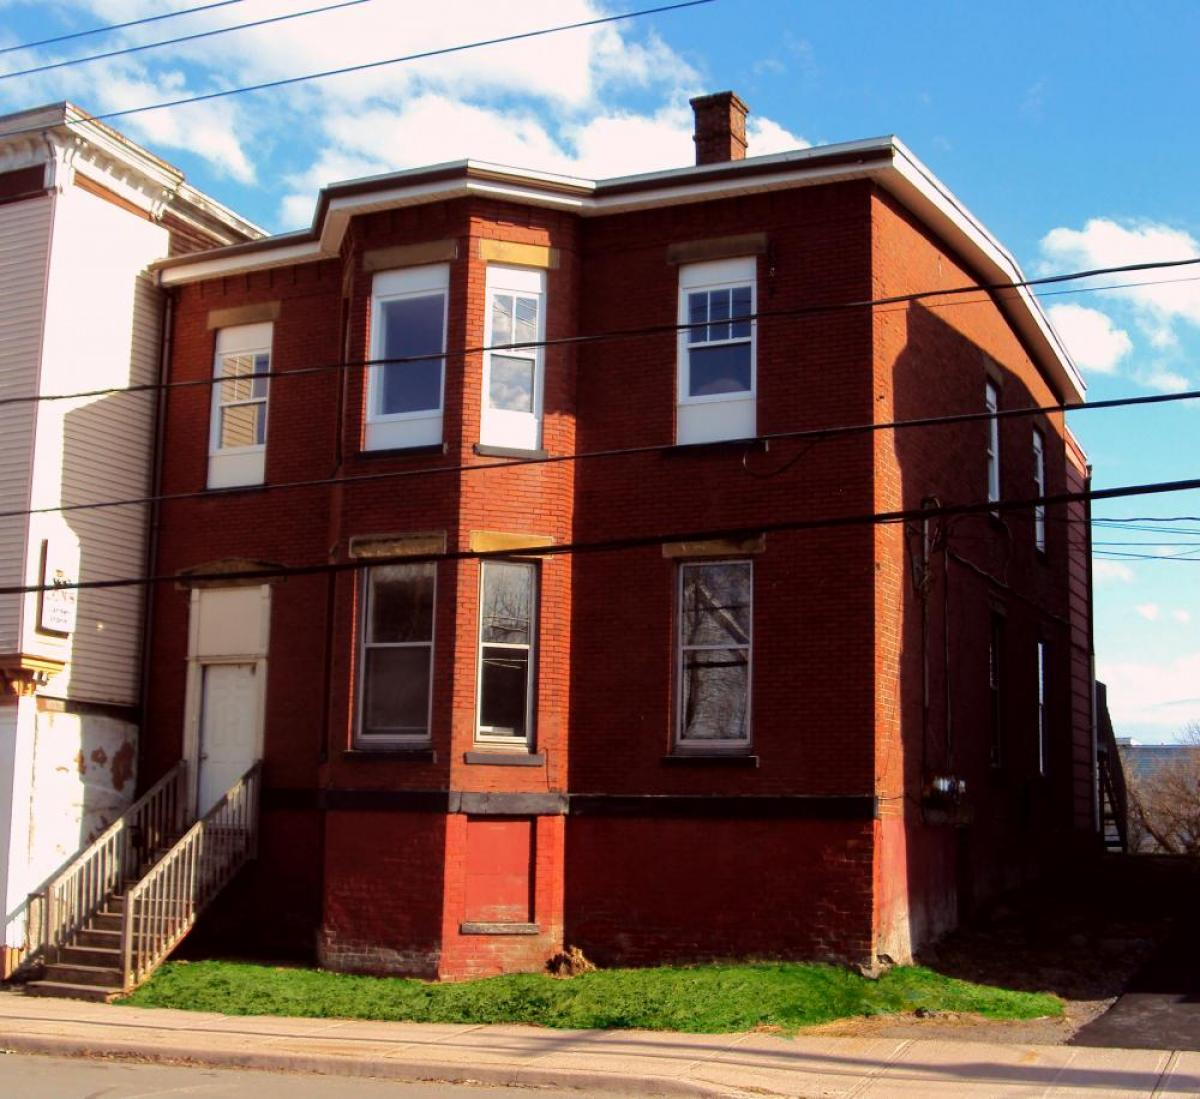 Property listed For Sale in Saint John, Canada